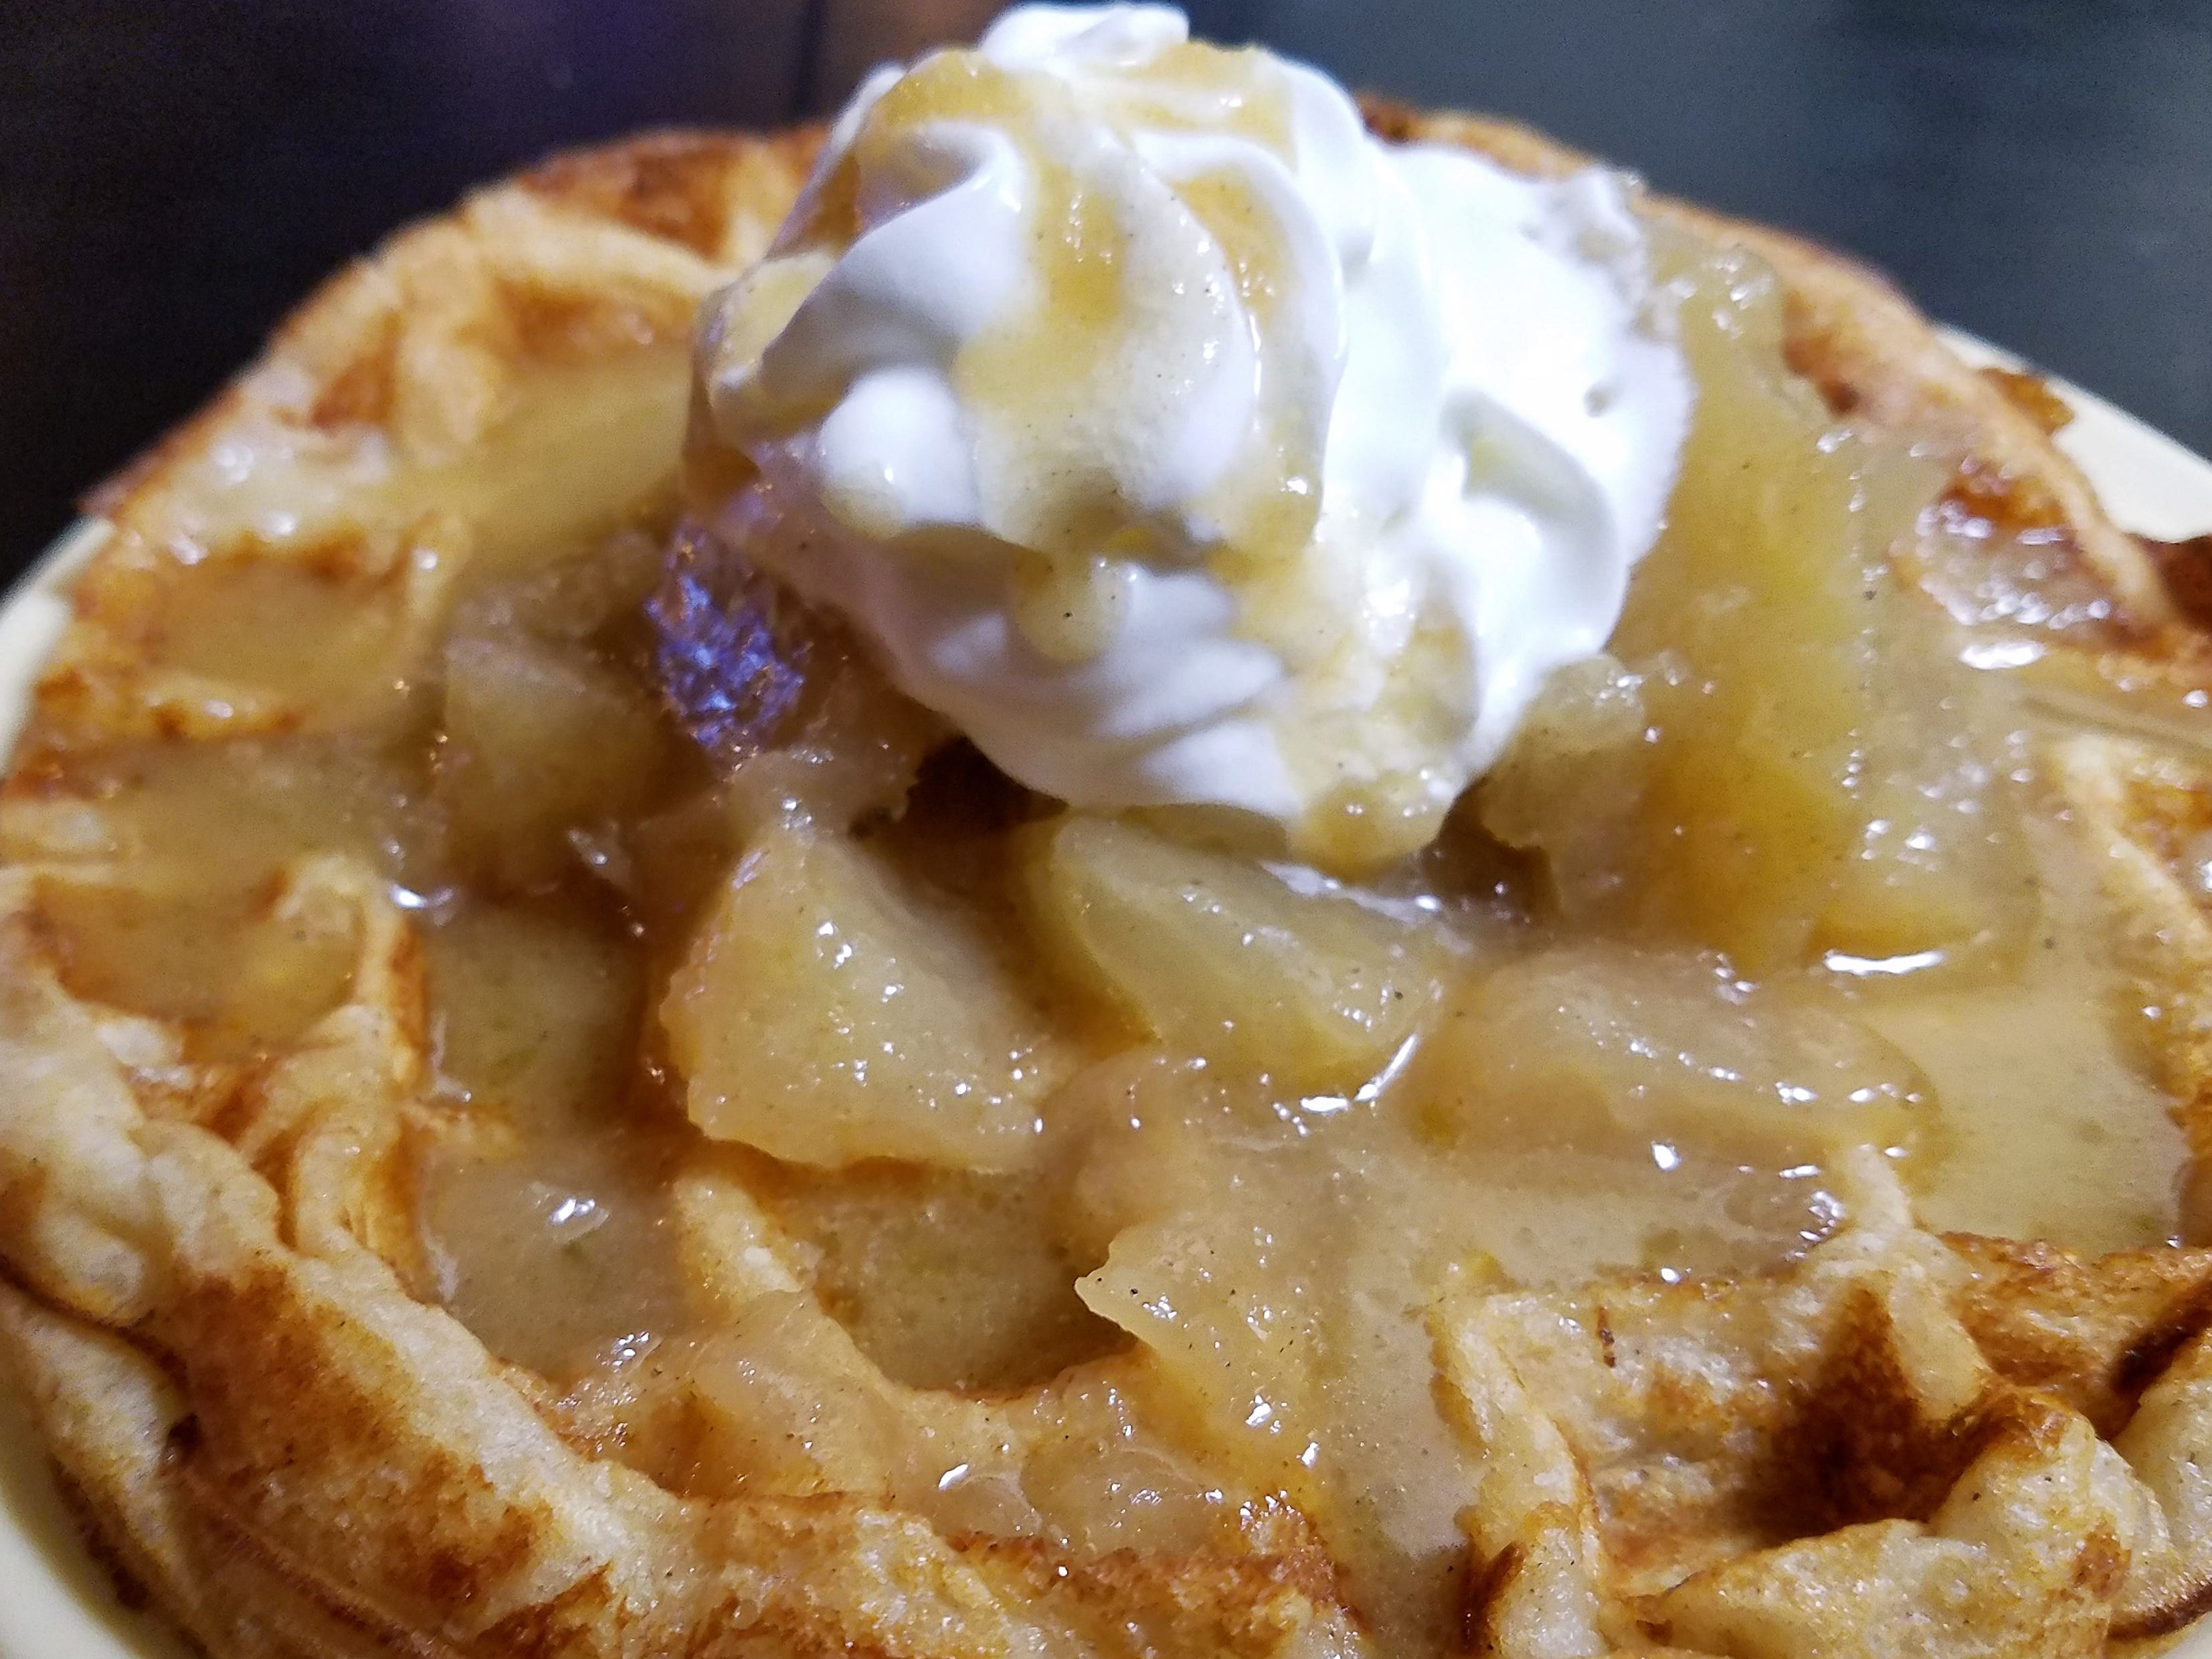 A freshly-made waffle topped with fried apples and whipped cream at Piston's Bar and Grill.